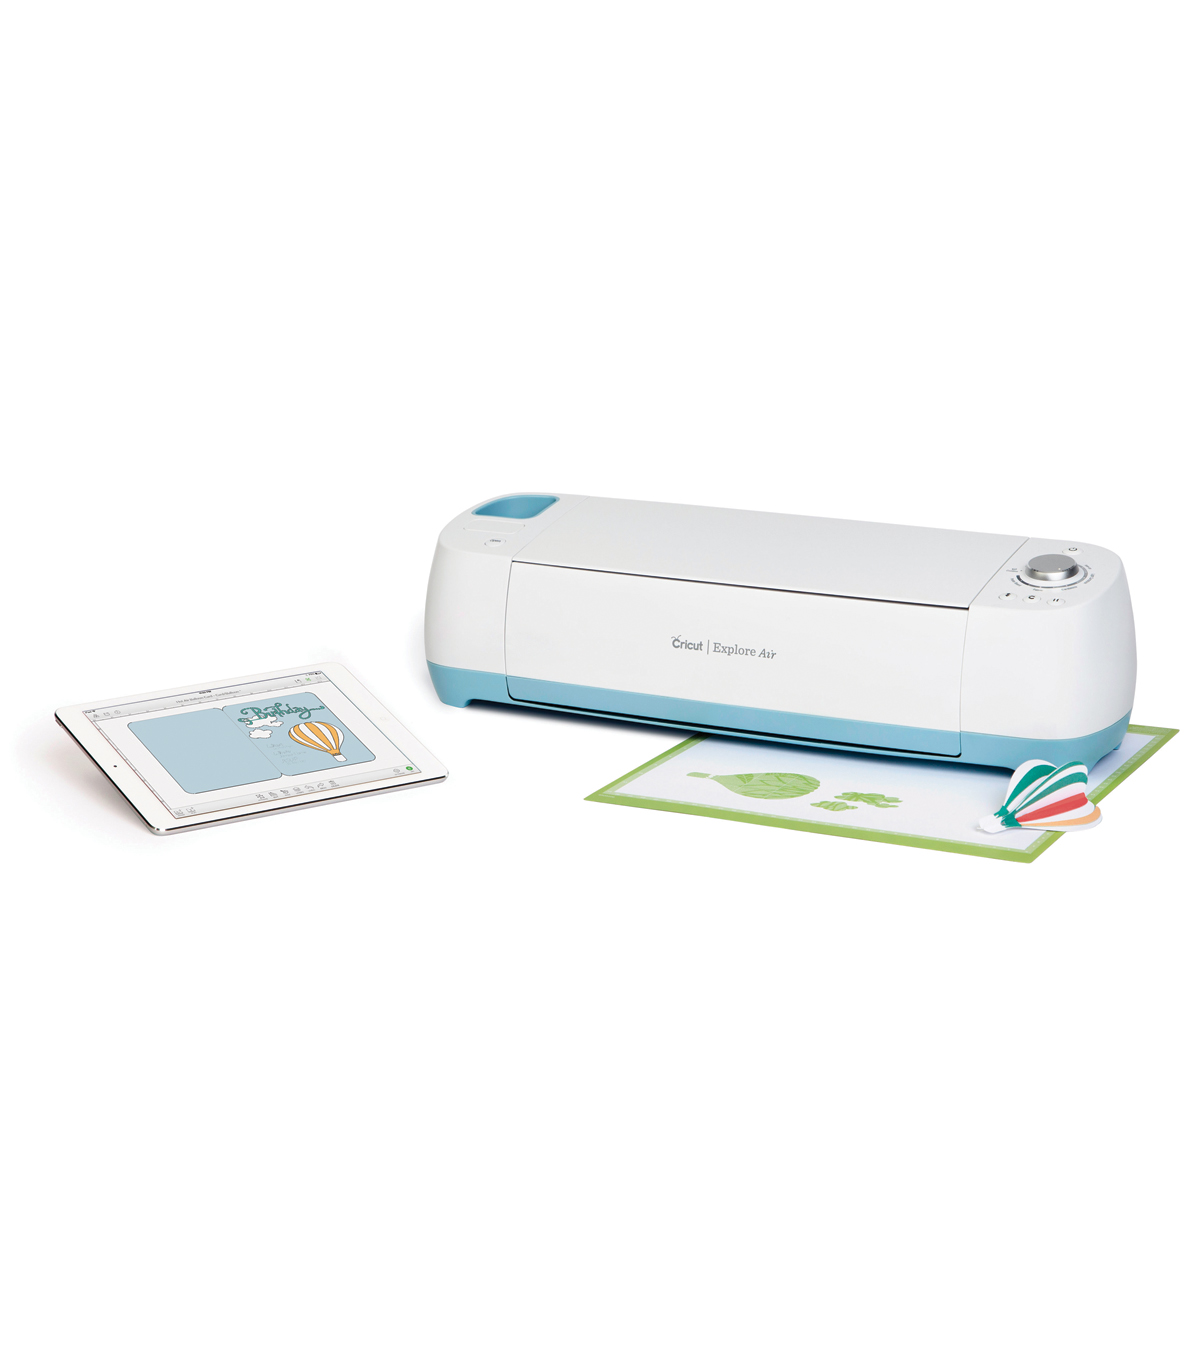 Cricut Explore Air Wireless Design-and-Cut System